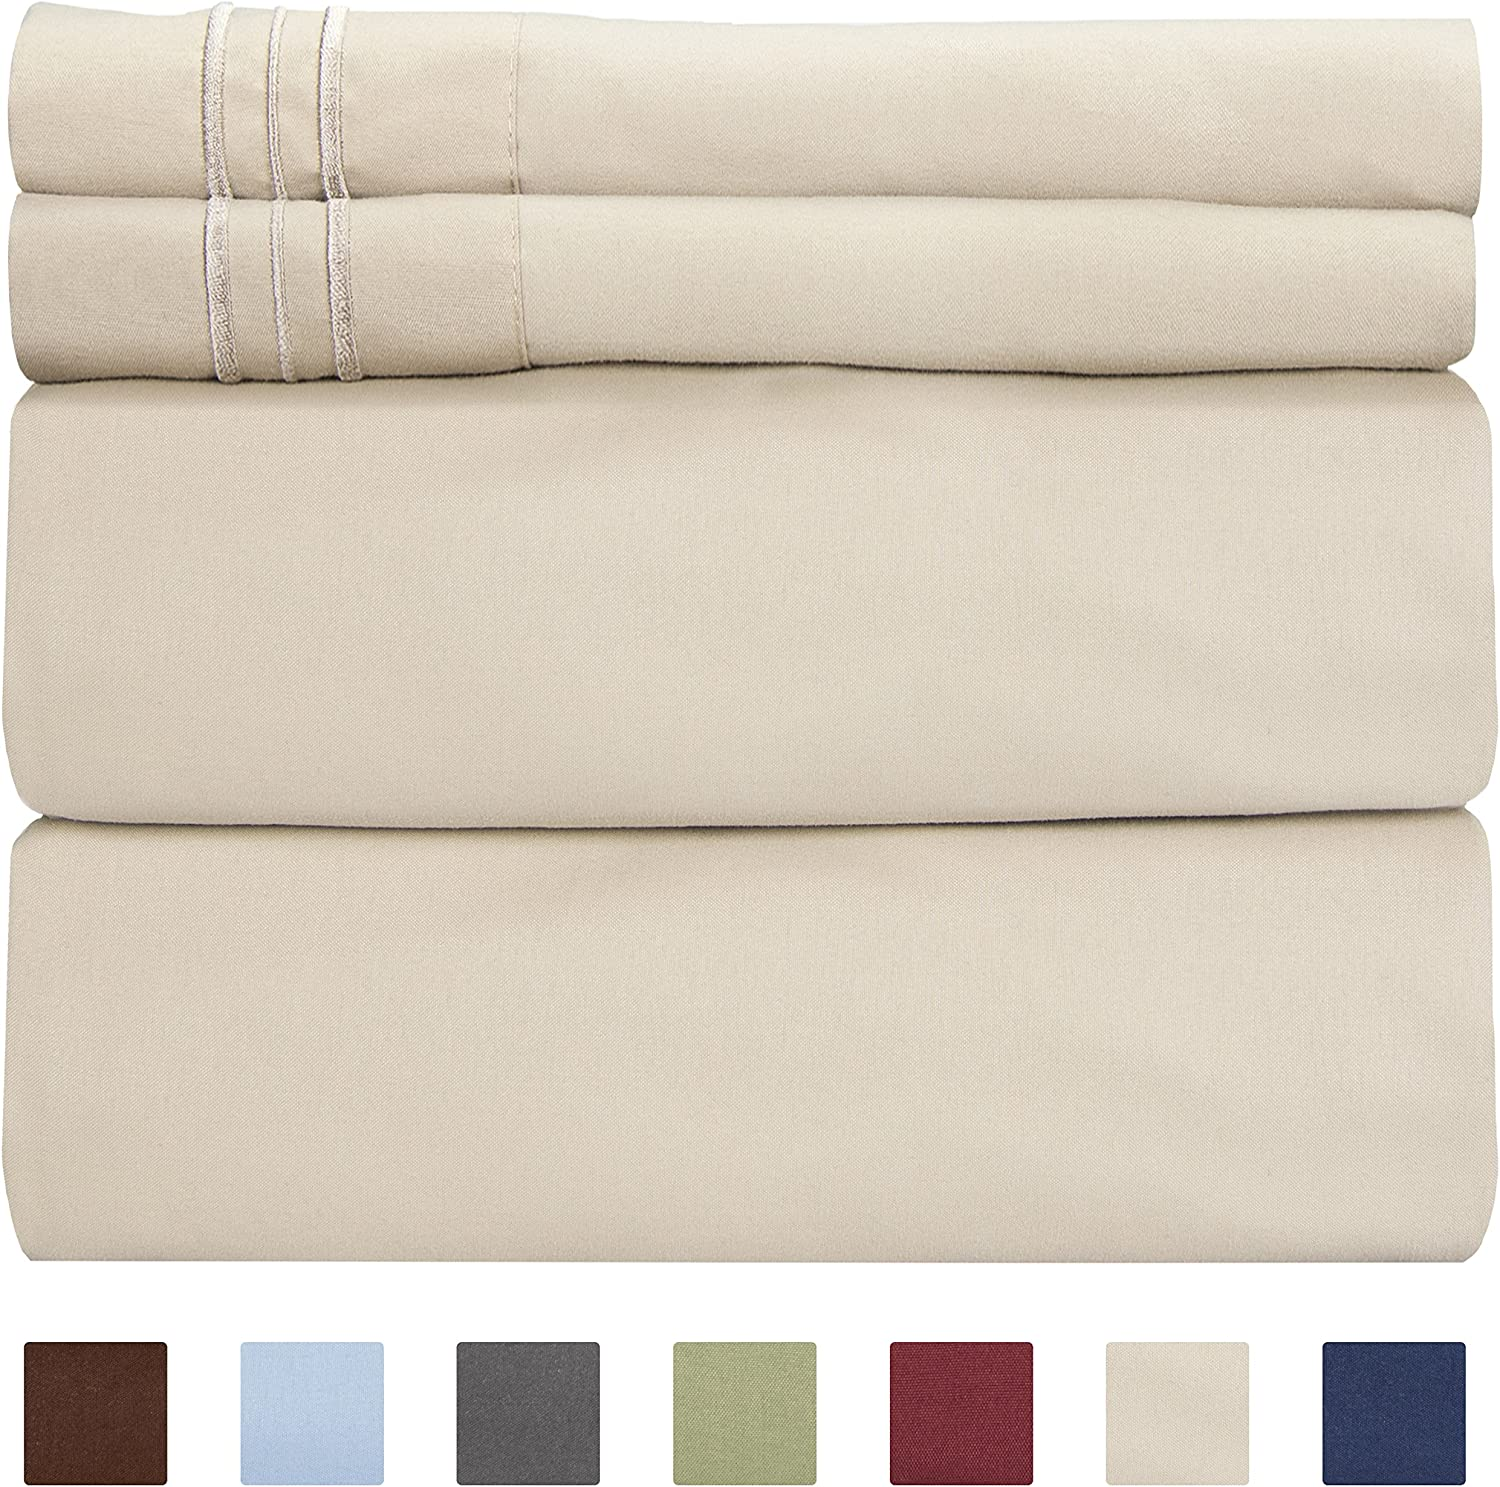 Full Size Sheet Set - 4 Piece - Hotel Luxury Bed Sheets - Extra Soft - Deep Pockets - Easy Fit - Breathable & Cooling Sheets - Wrinkle Free - Comfy – Beige Tan Bed Sheets - Fulls Sheets – 4 PC